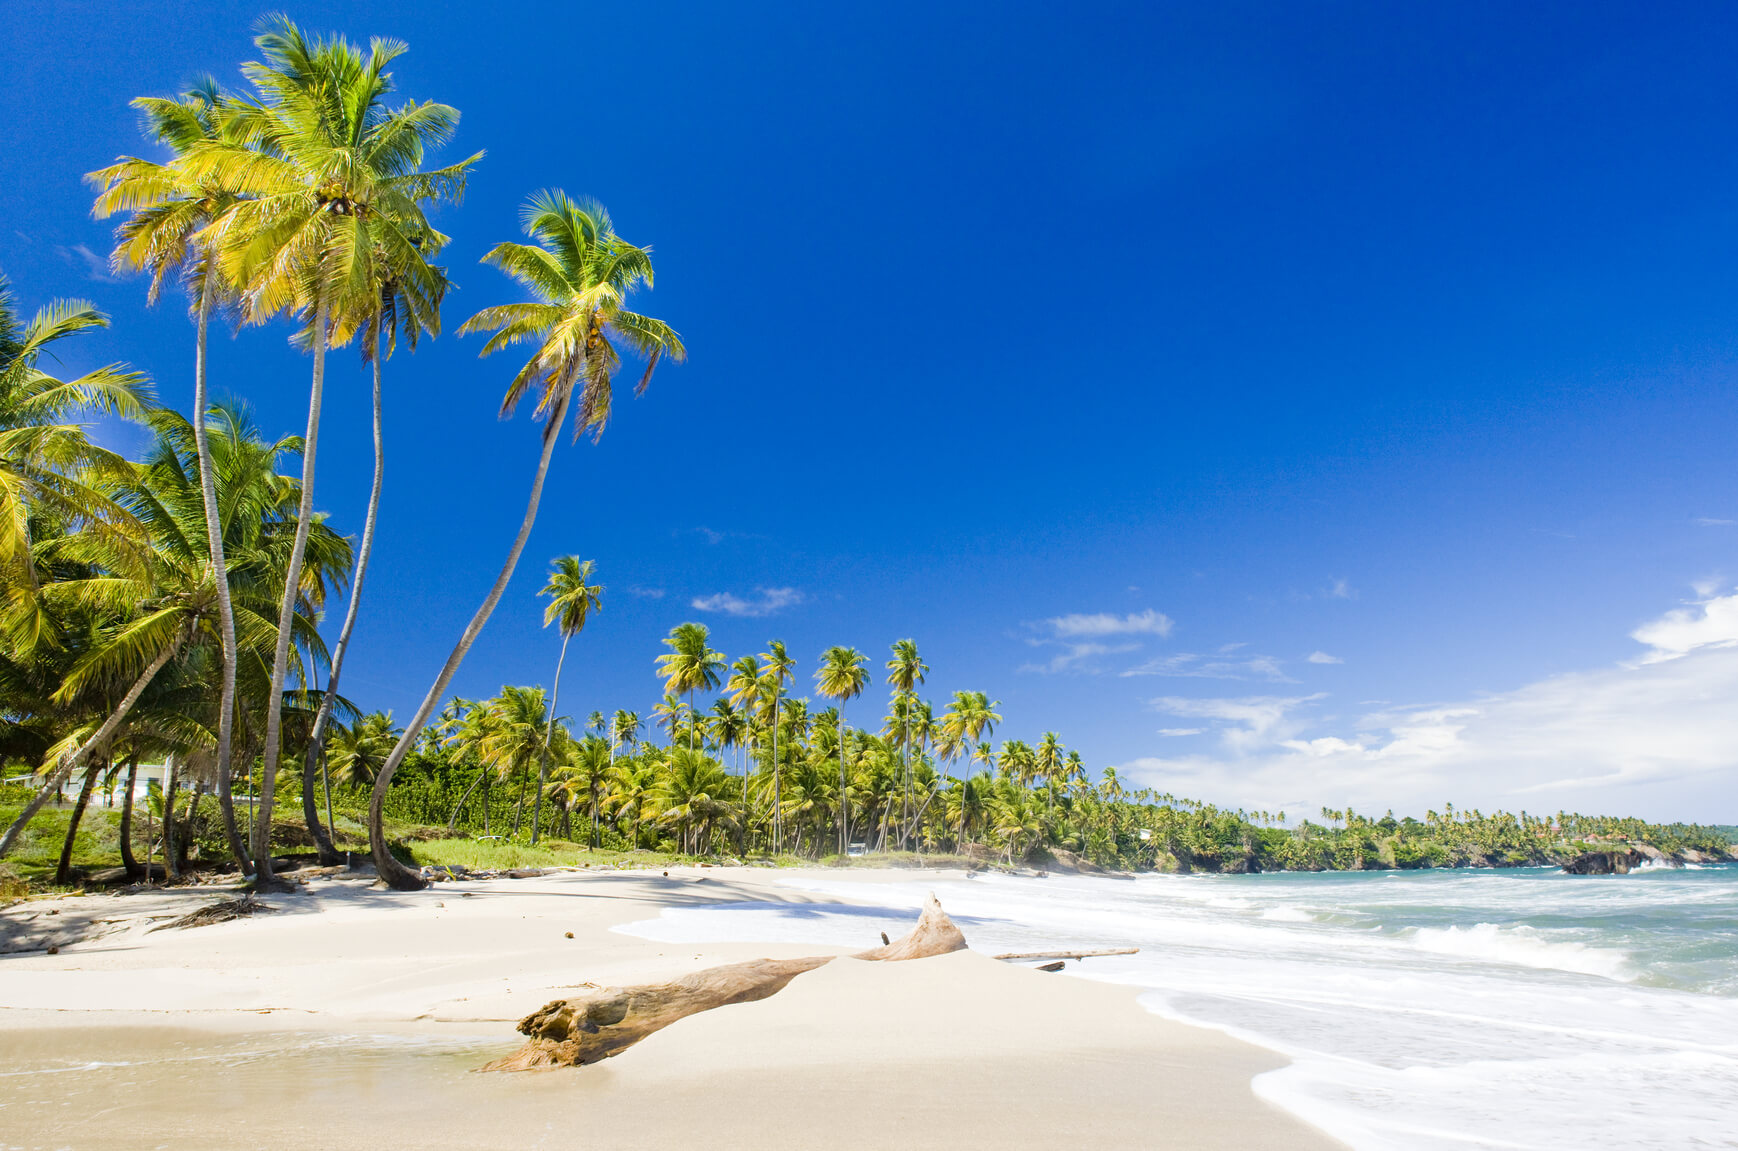 SUMMER: Non-stop from Houston, Texas to Trinidad for only $217 roundtrip (Jul-Oct dates)